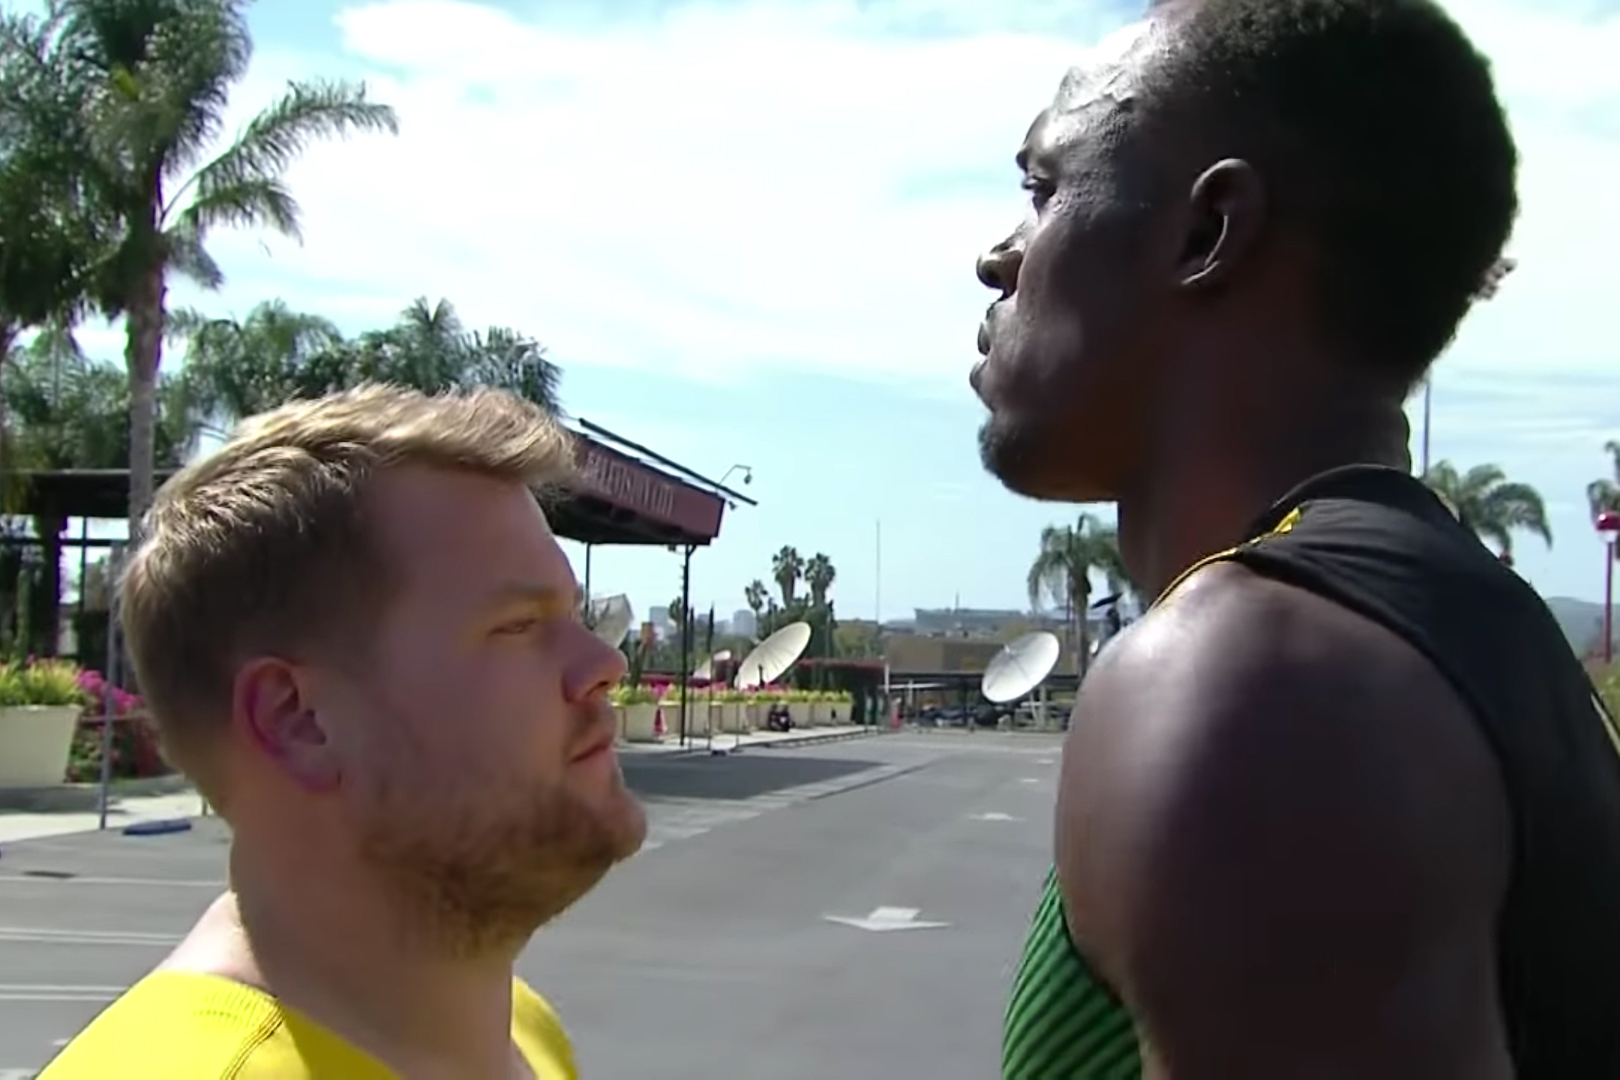 Watch James Corden Try to Outrun the Fastest Man Alive, Usain Bolt